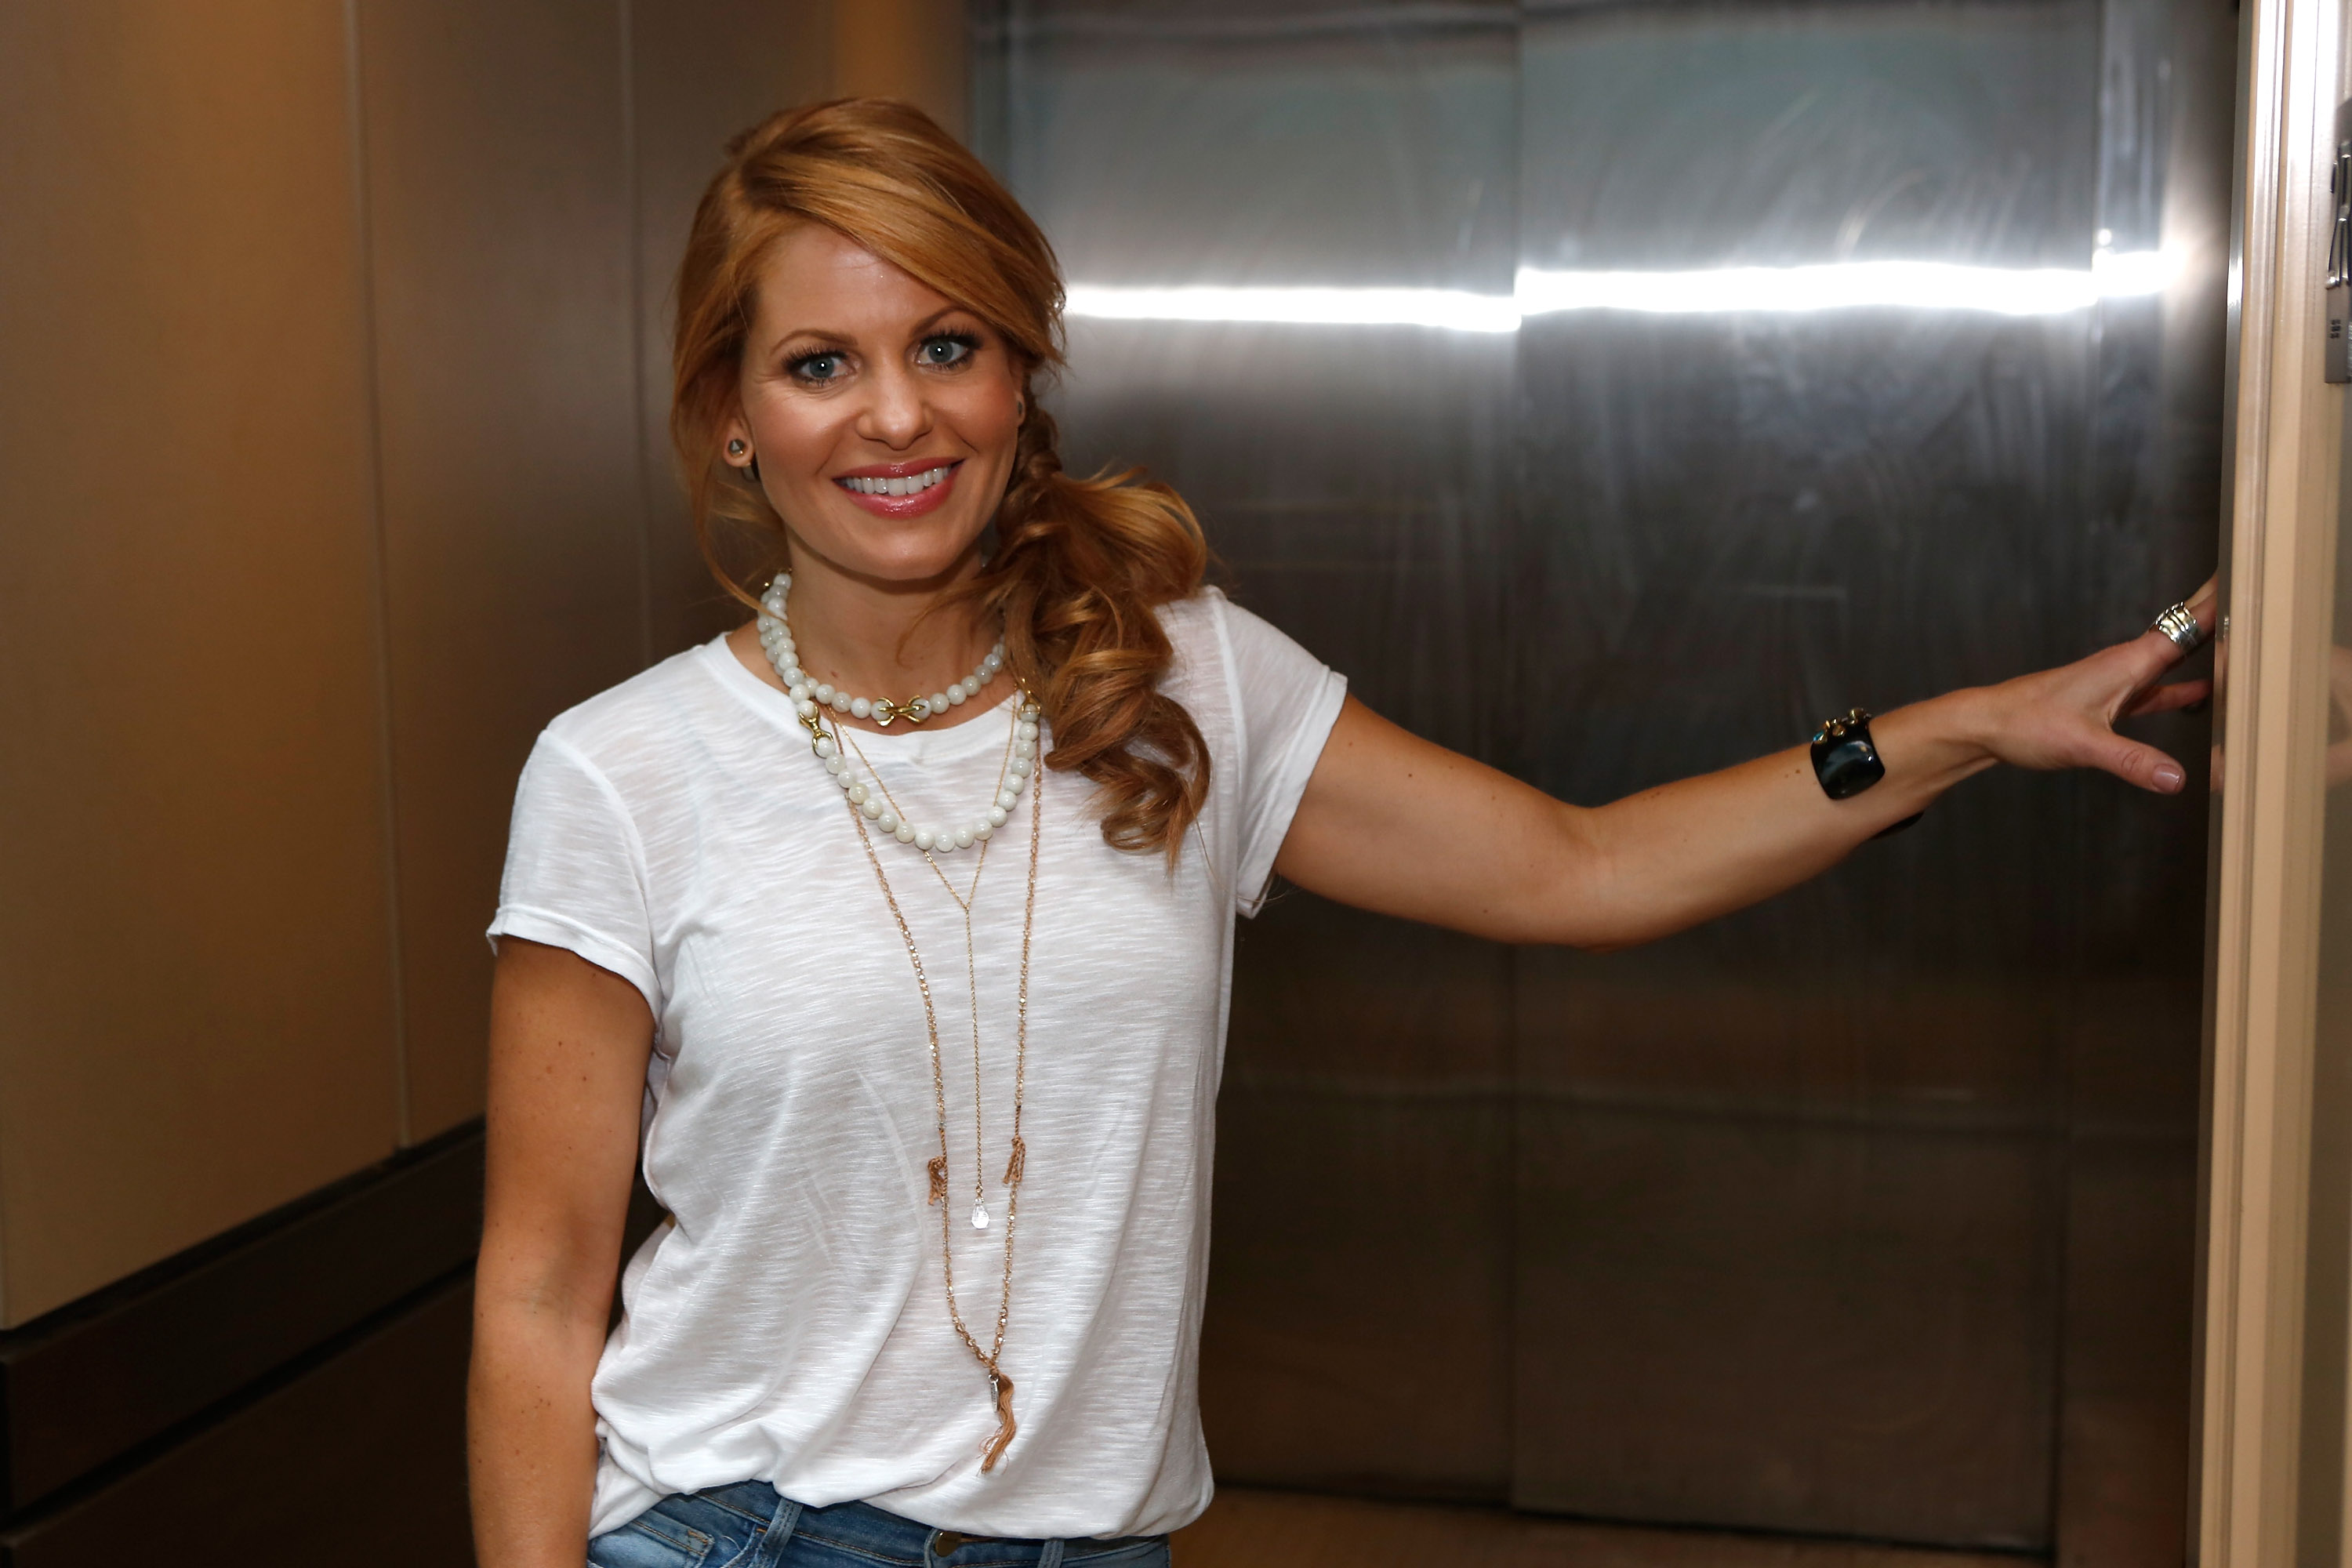 Candace Cameron Bure at Banfield Hospital